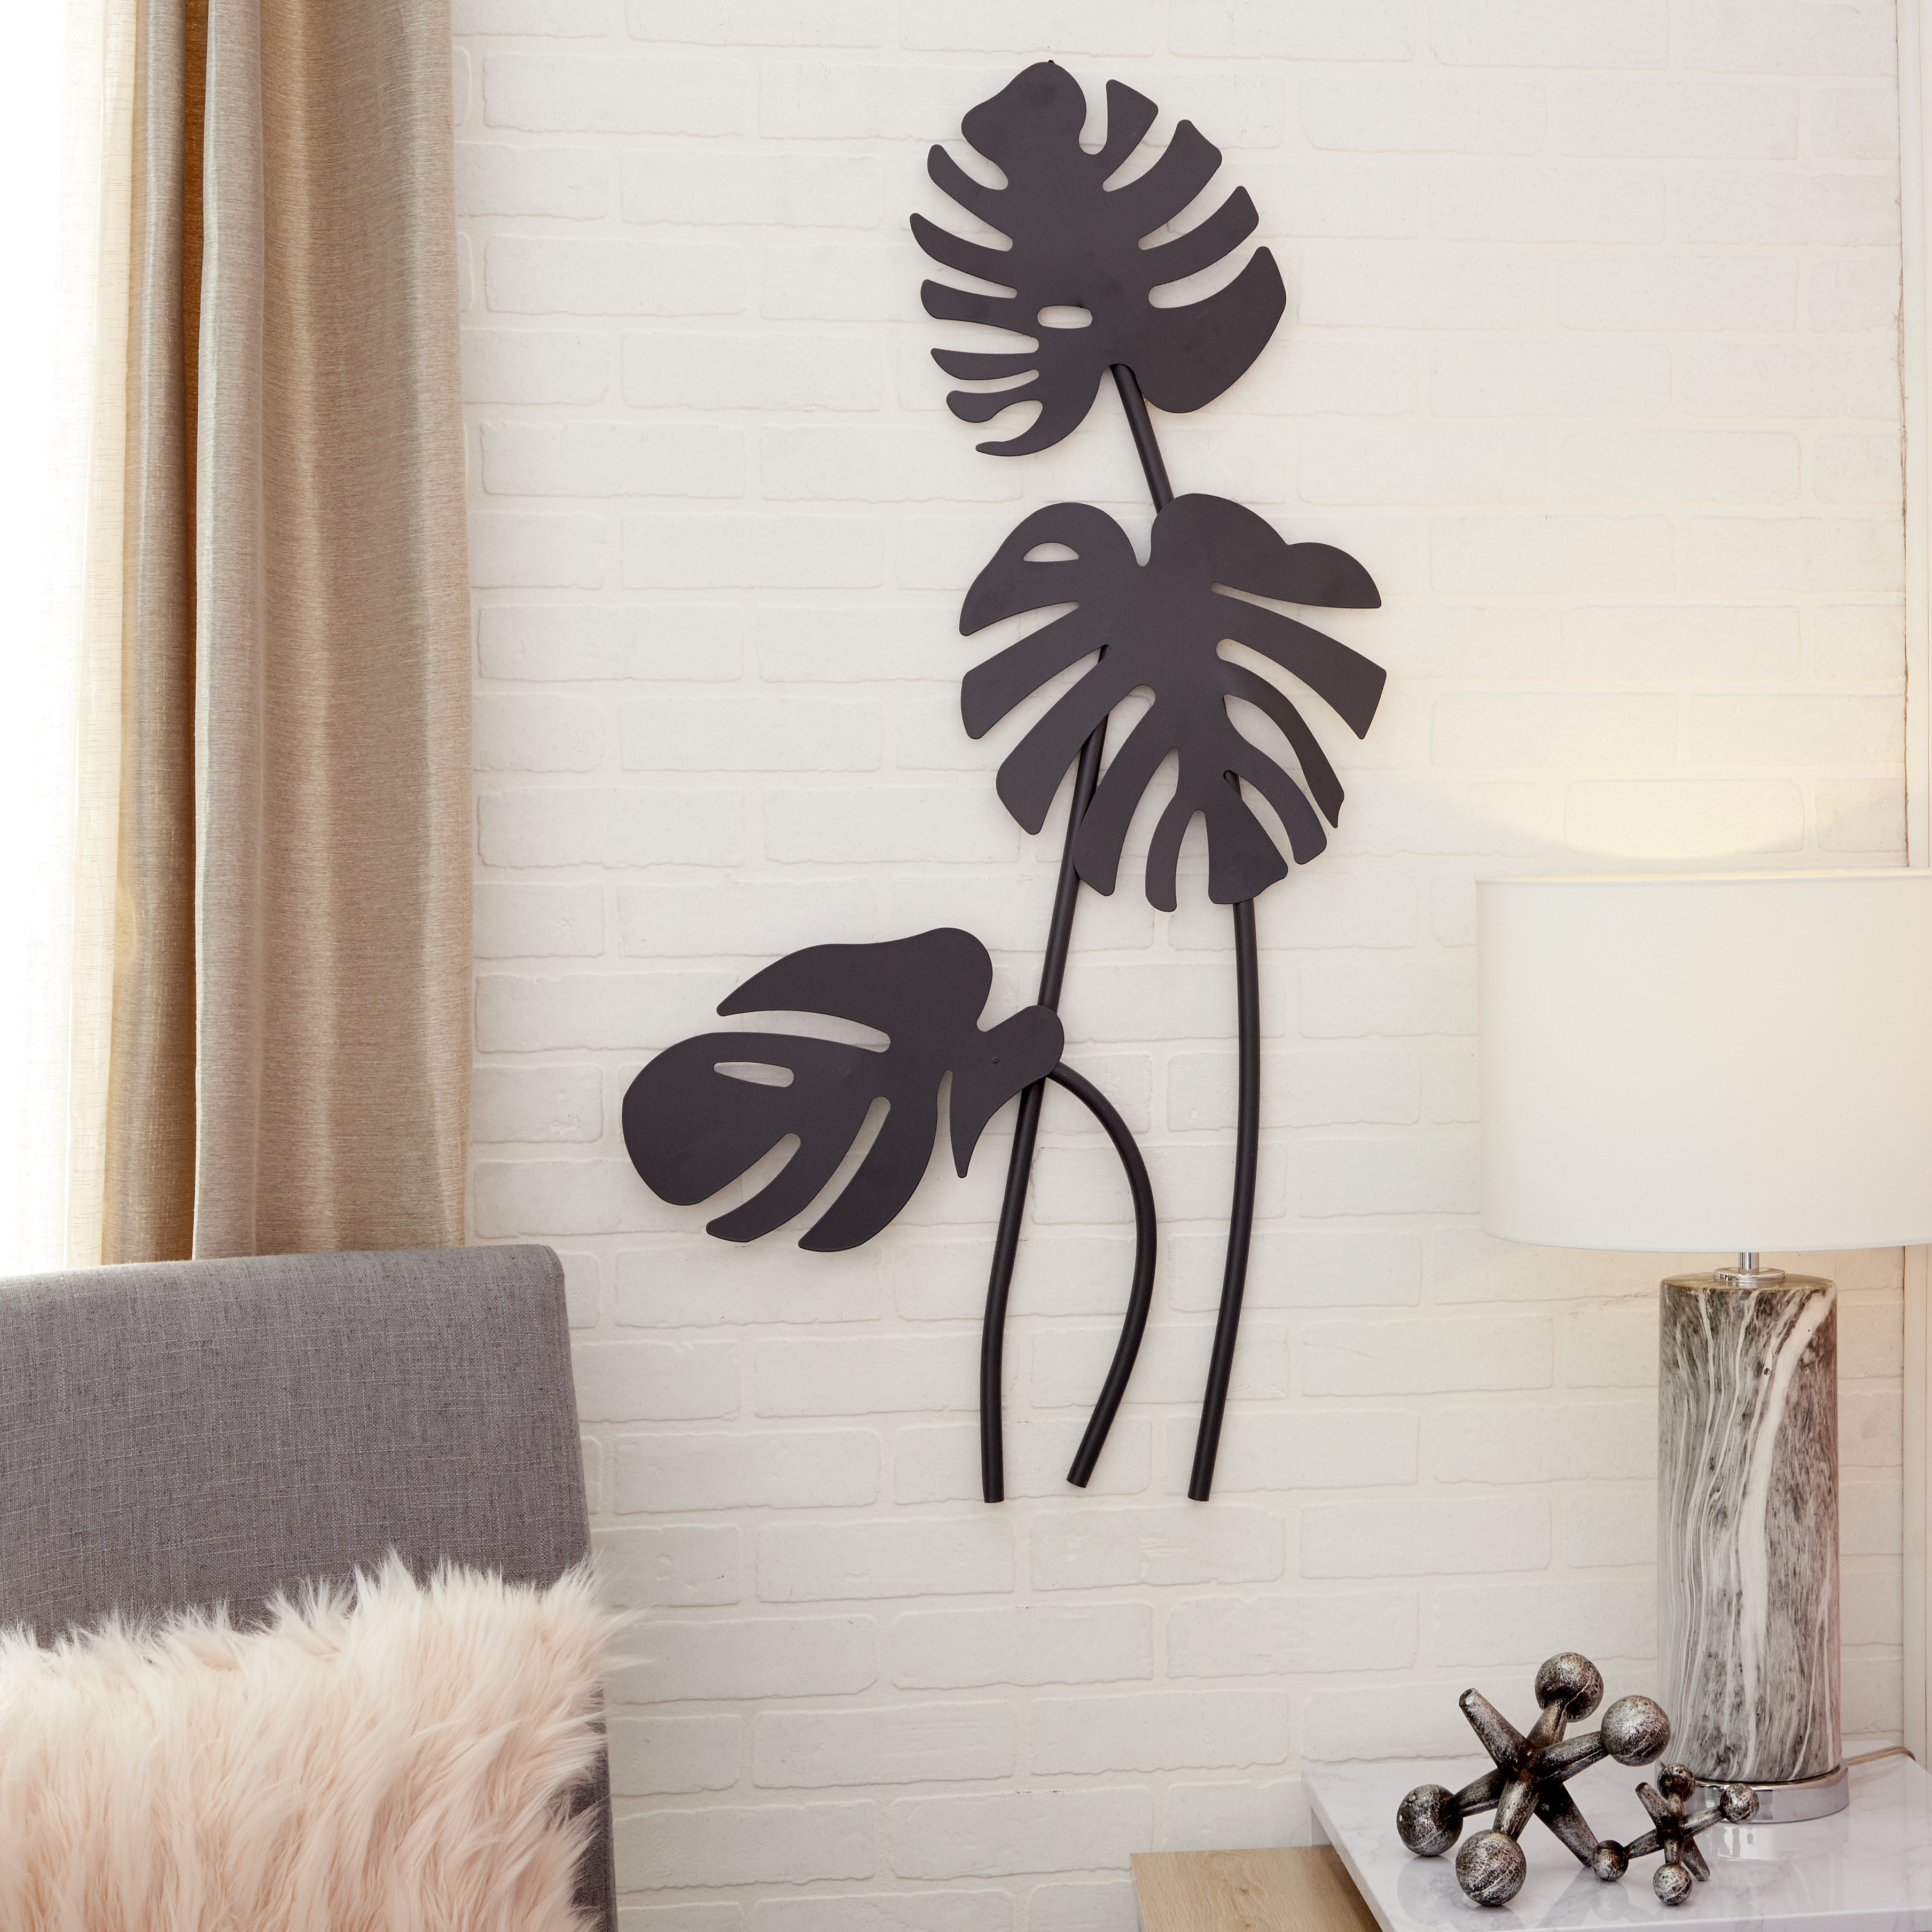 Metal Wall Decor By Cosmoliving In Favorite Cosmoliving Large Black Palm Leaf Sculptures Metal Wall Decor (View 9 of 20)